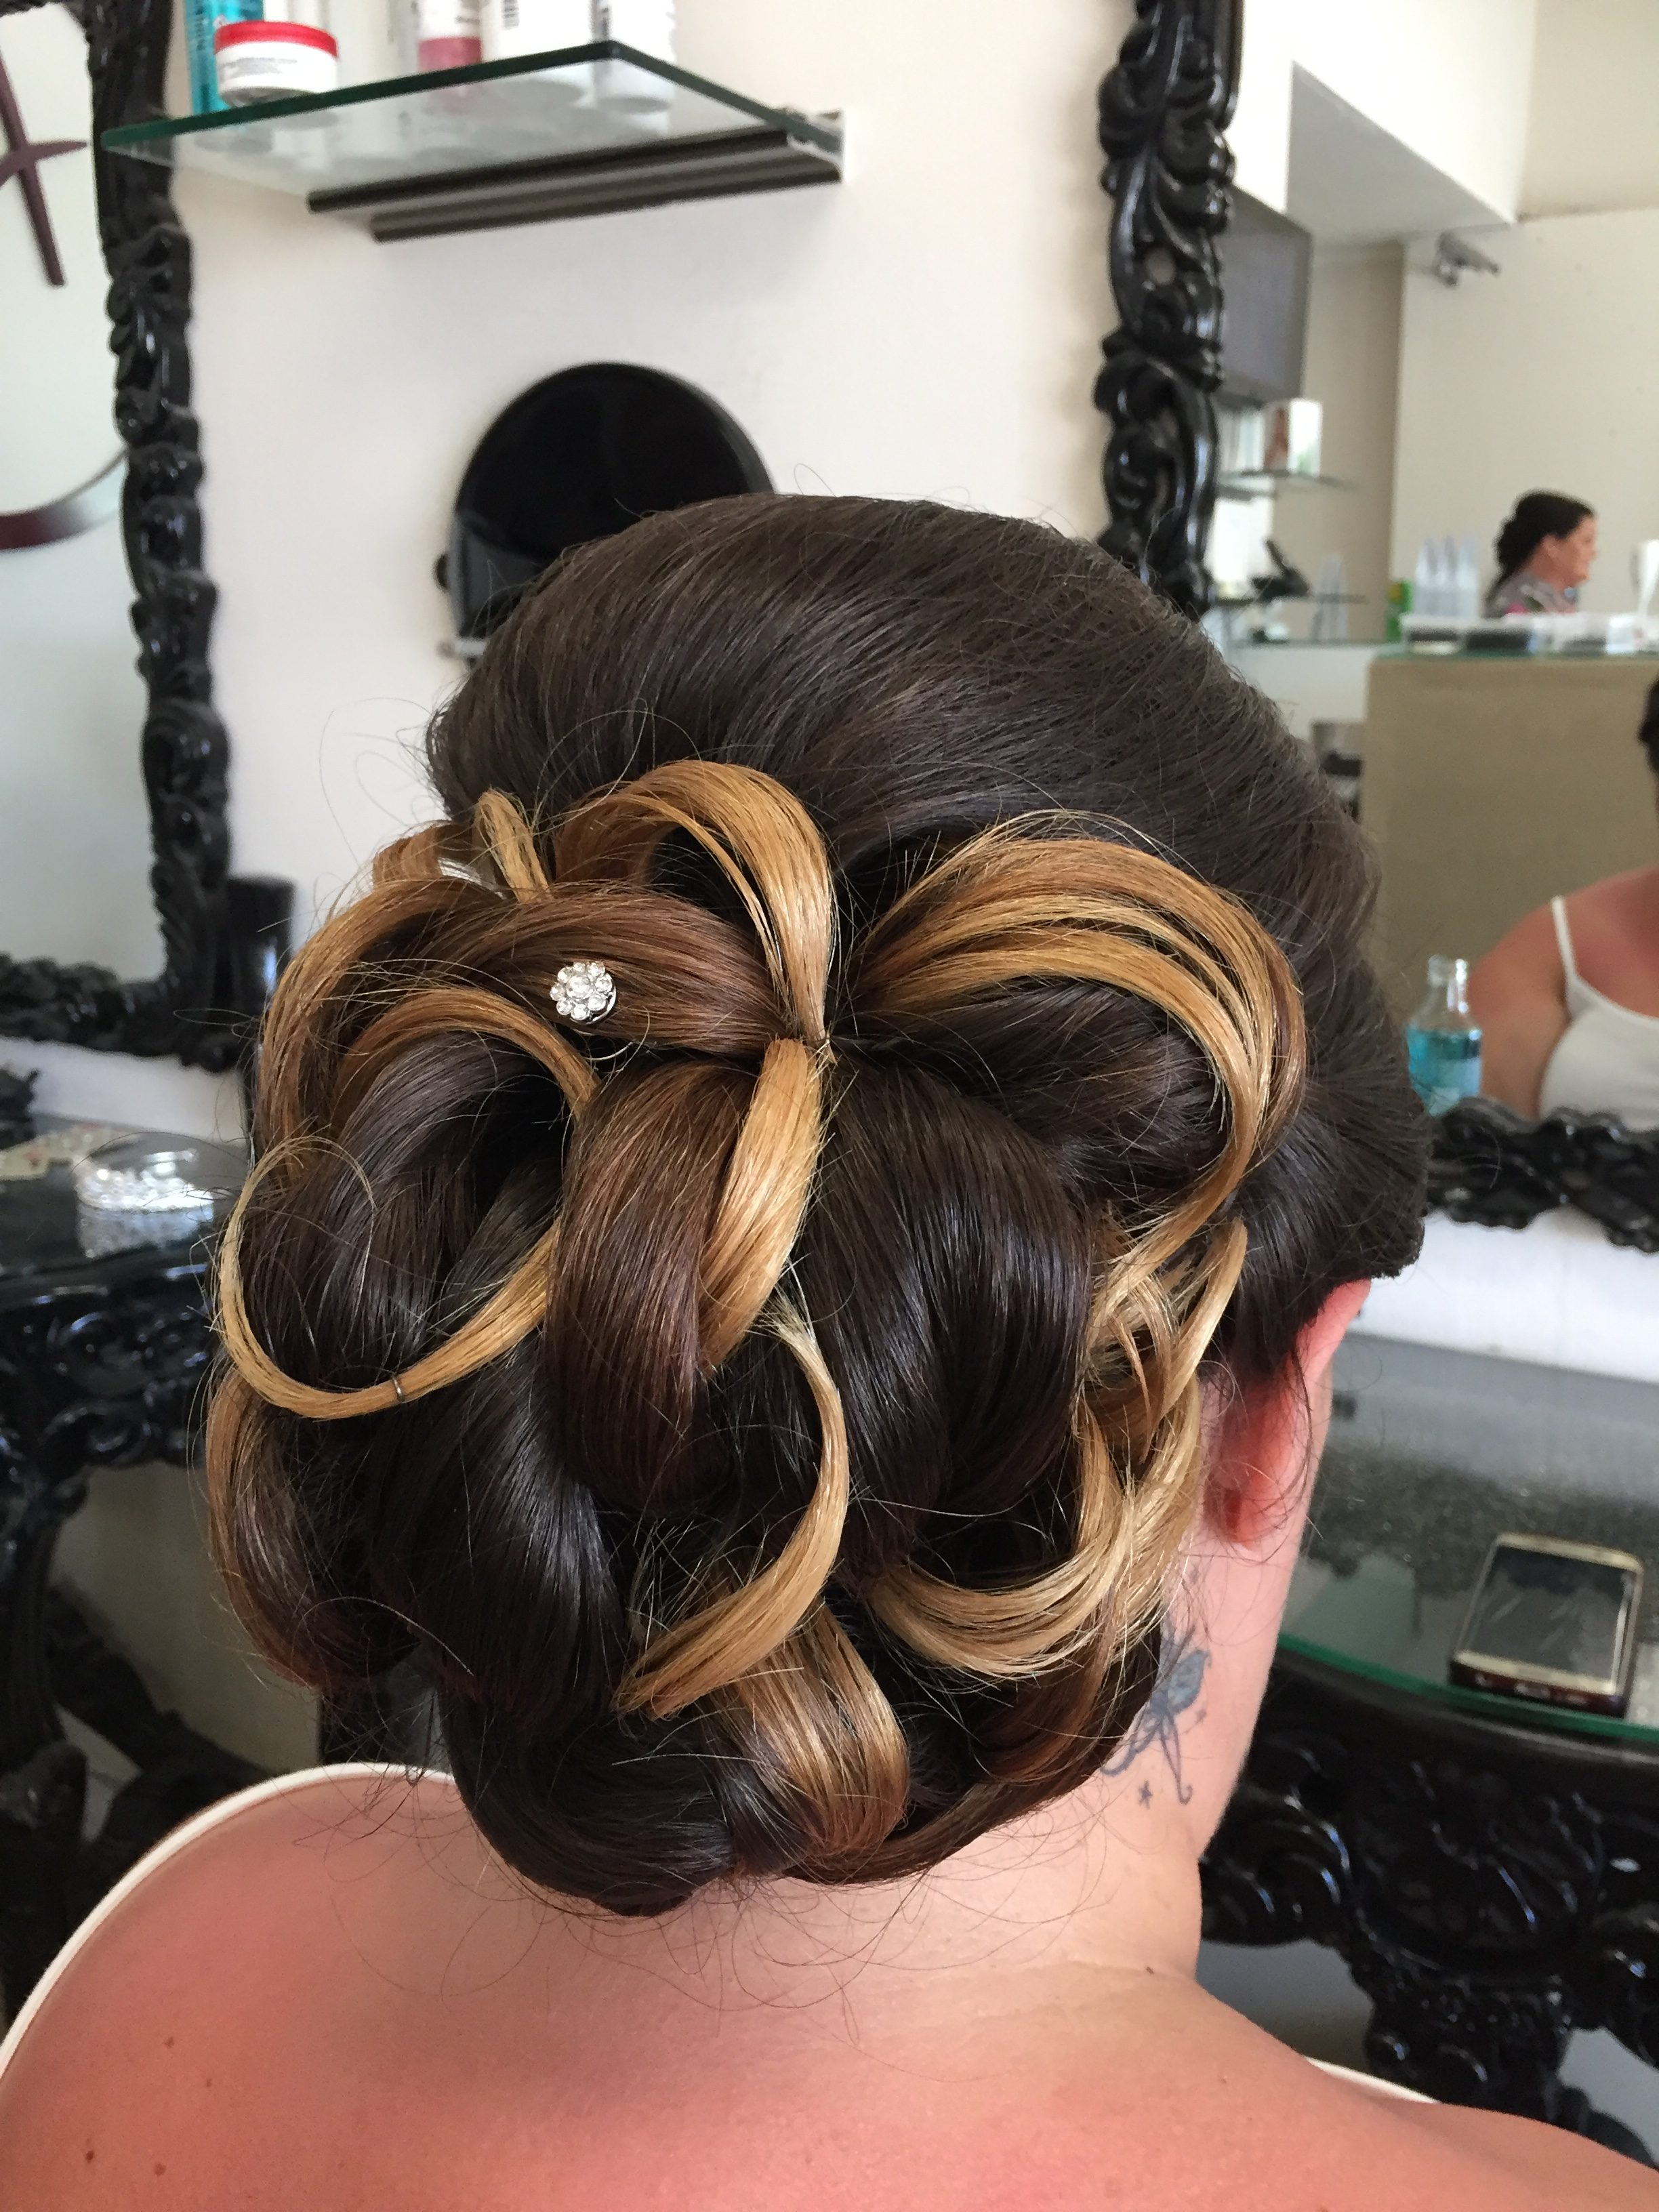 Bridesmaids Hair-up